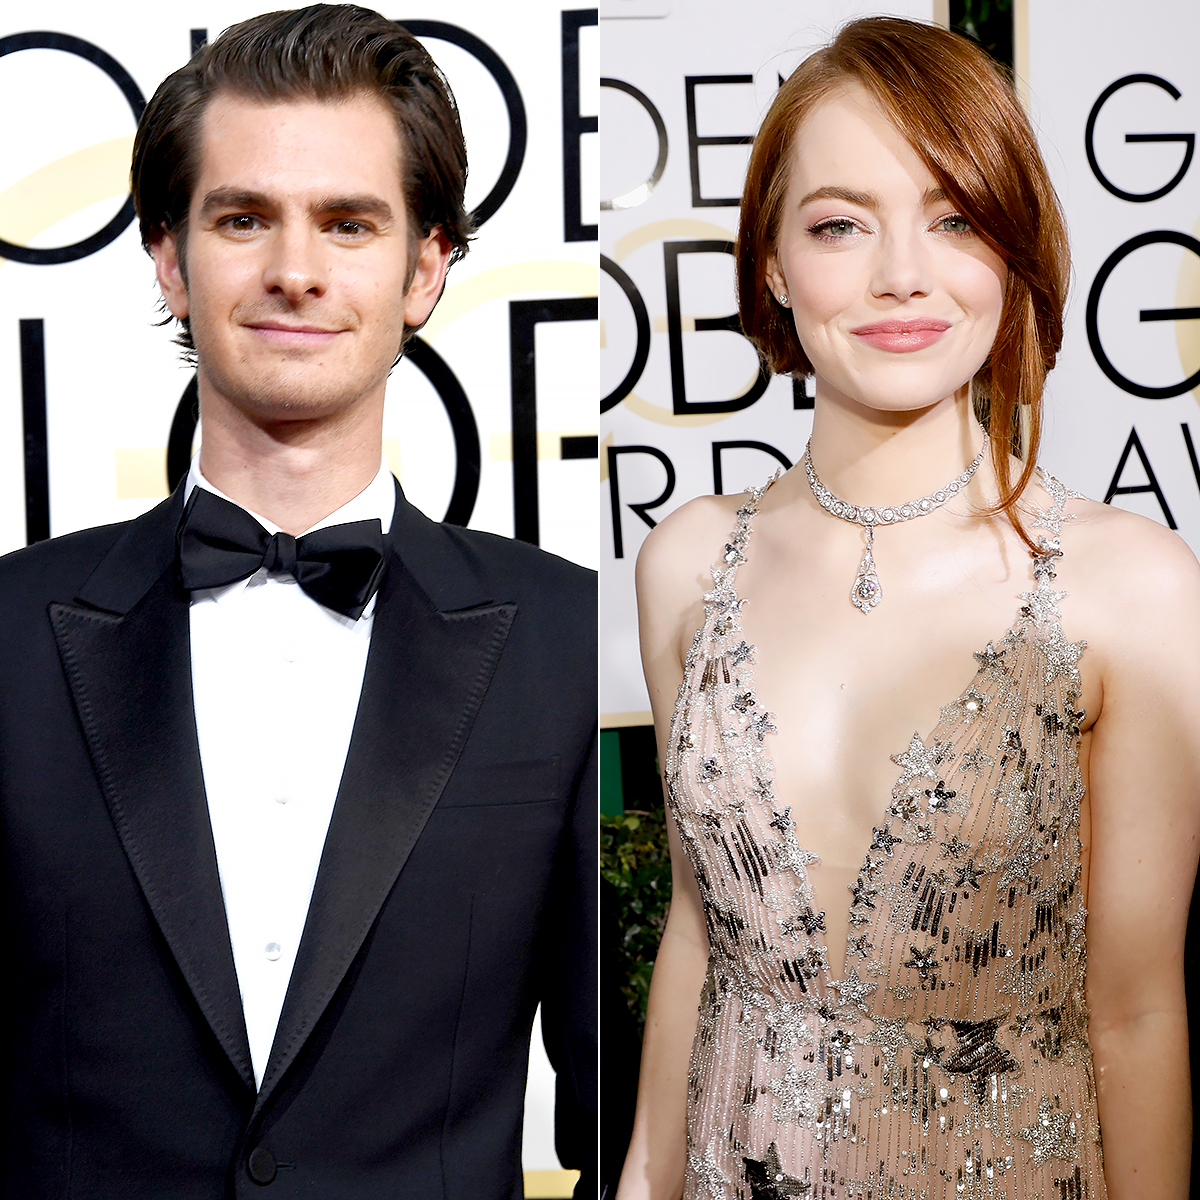 Andrew Garfield and Emma Stone attend the 74th Annual Golden Globe Awards.